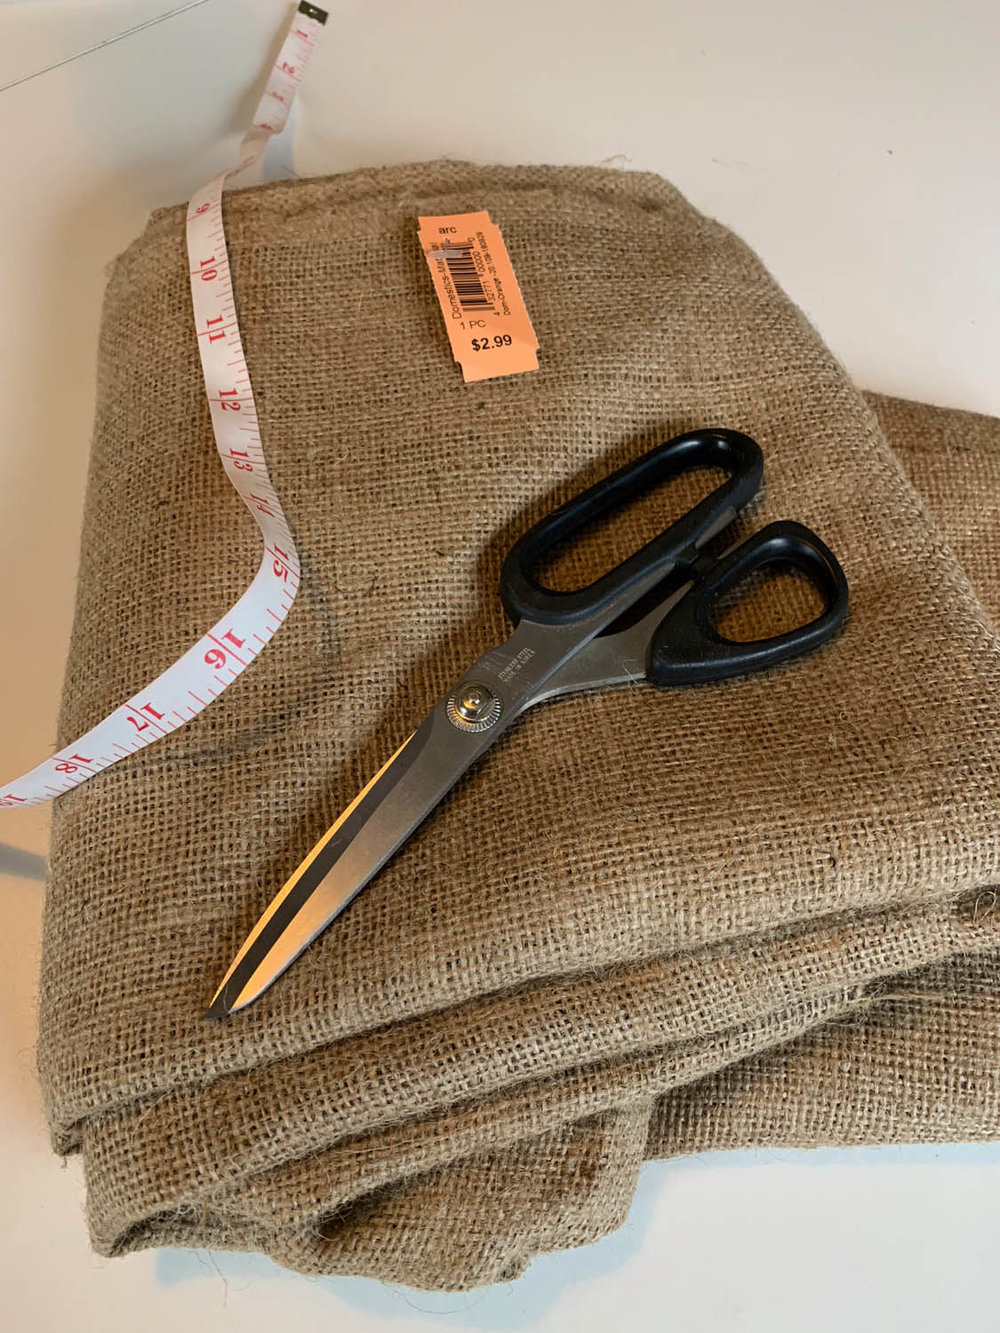 Burlap yardage with scissors and tape measure